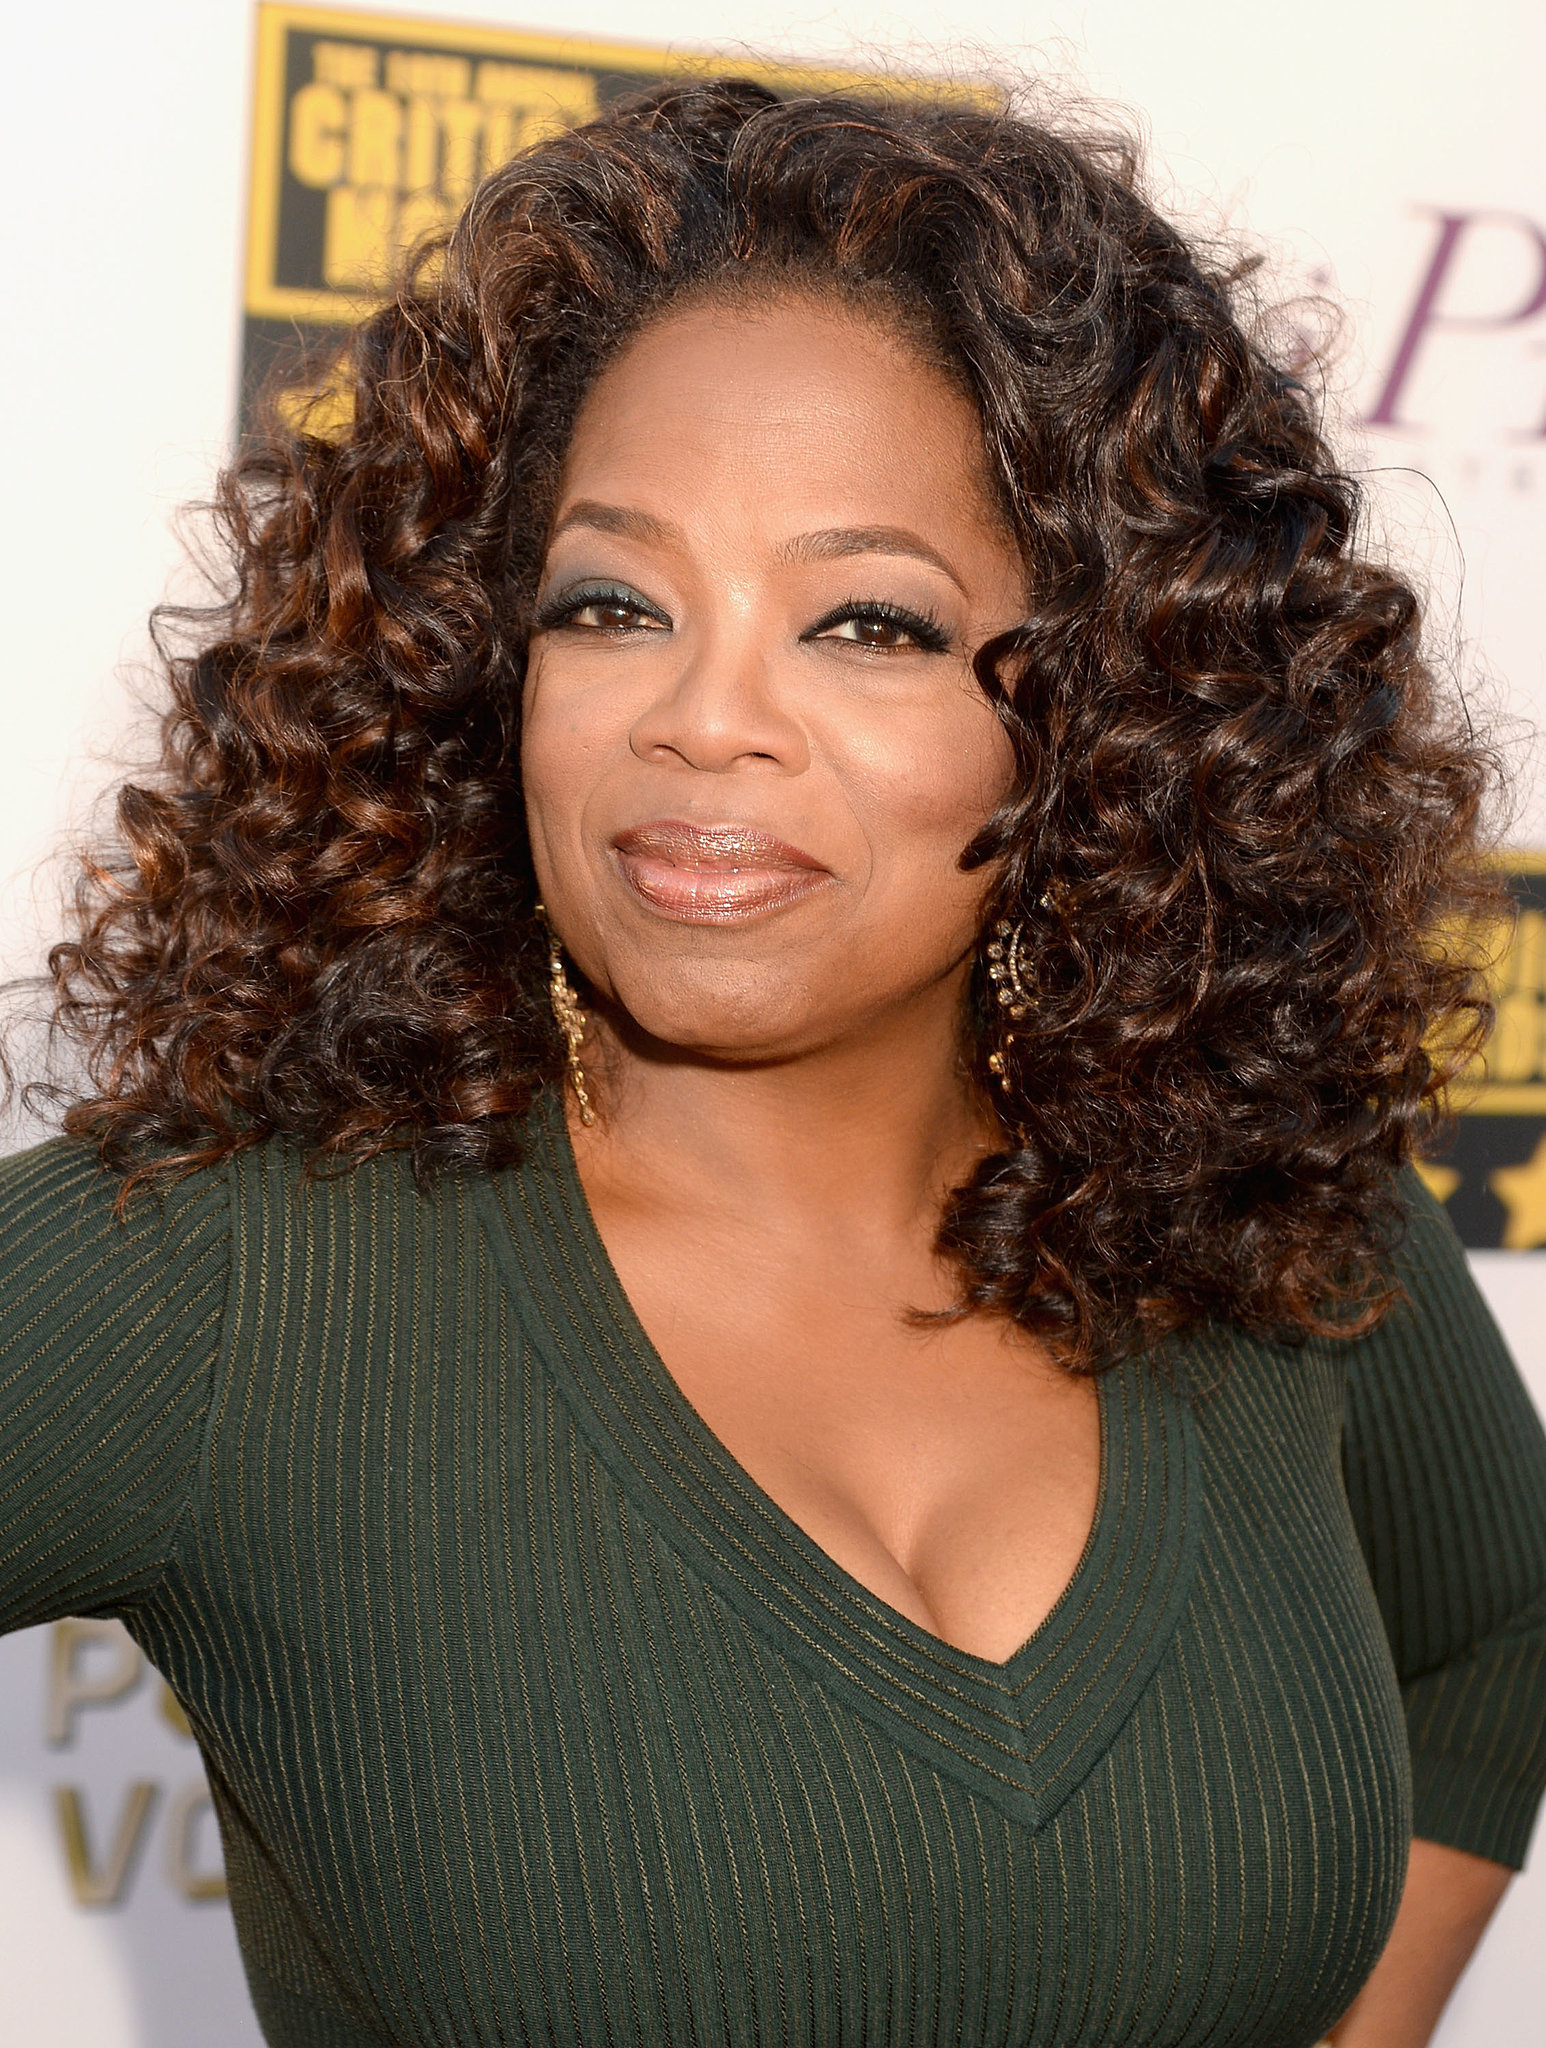 Oprah Winfrey 360 Degrees Of All Out Glamour At The